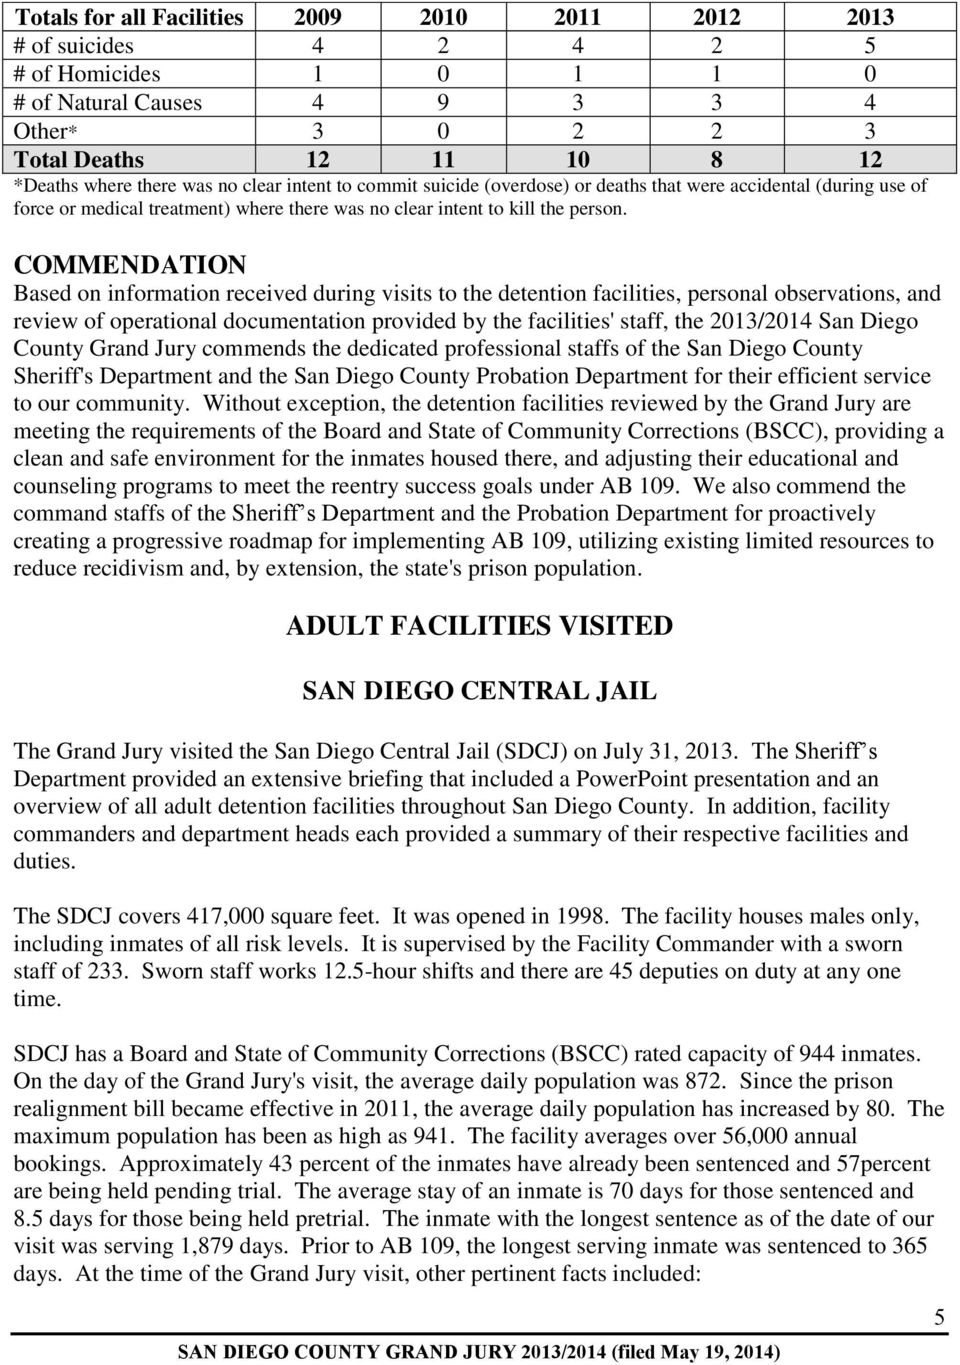 SAN DIEGO COUNTY DETENTION FACILITIES CONDITION AND